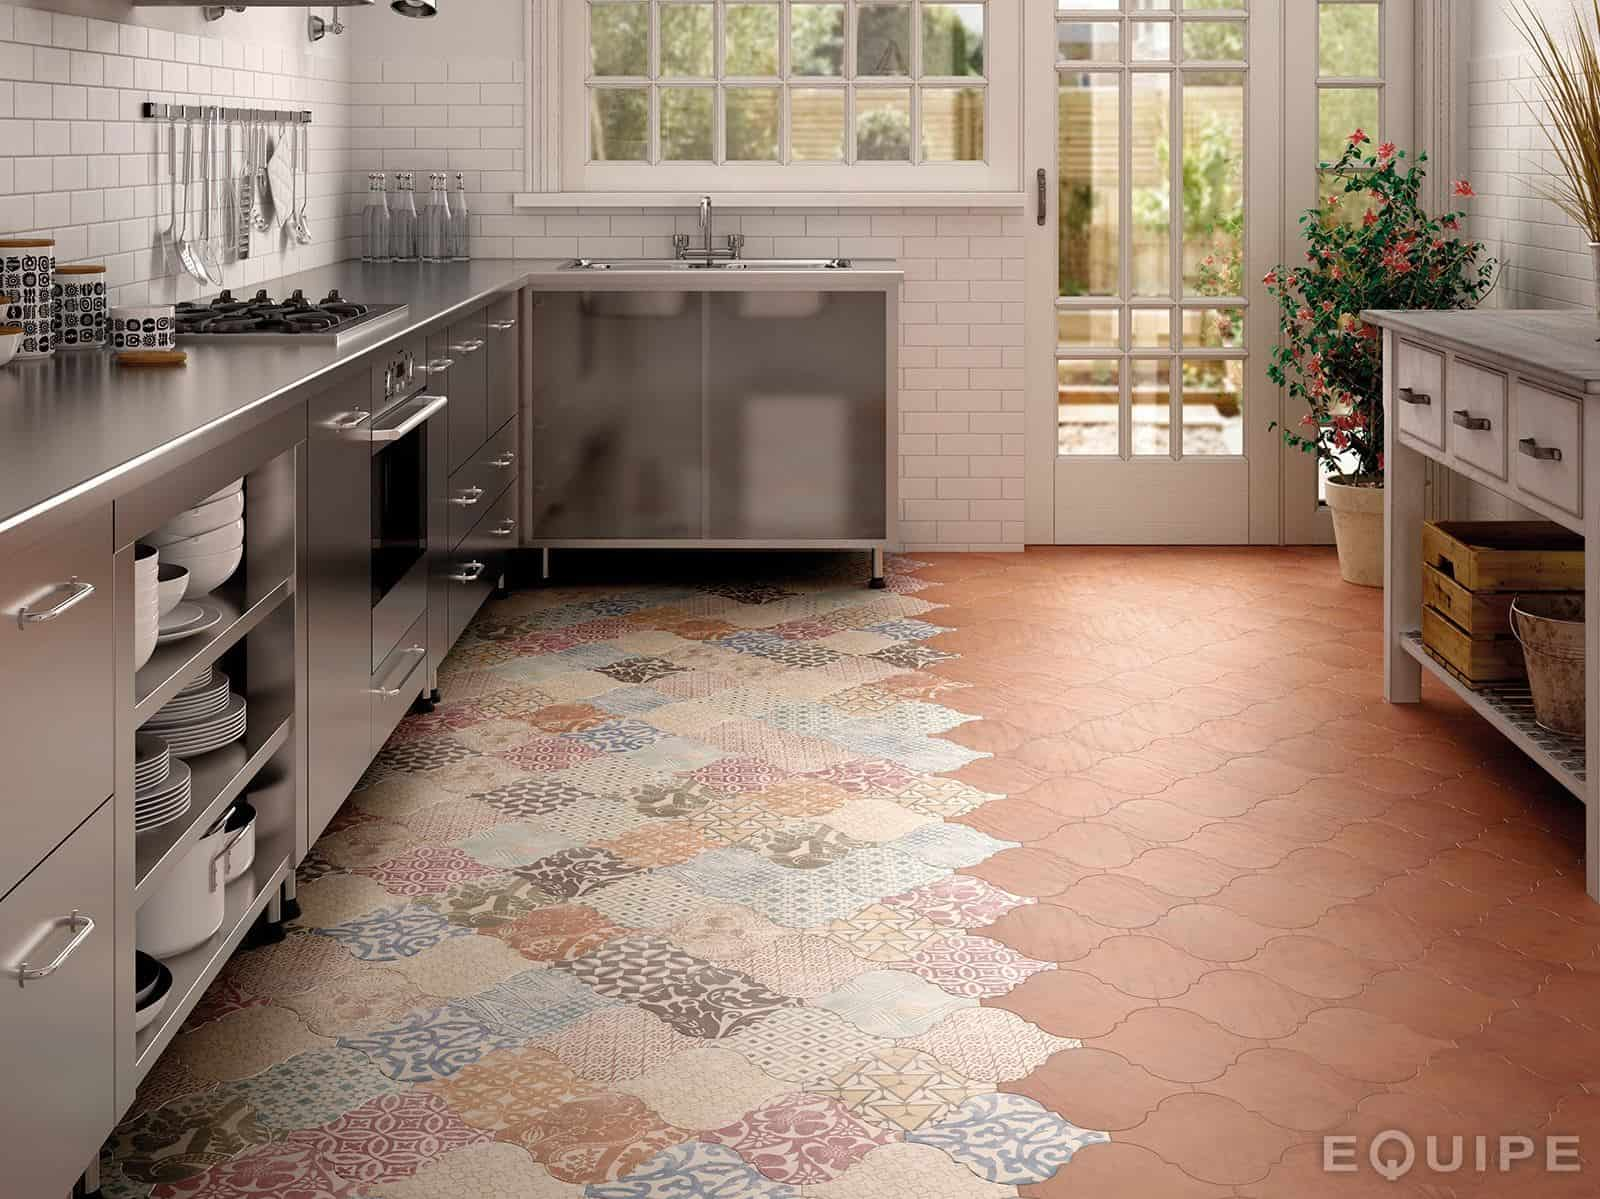 kitchen tile flooring. Beautiful Tile View In Gallery Arabesquetilekitchenfloorpatchworkequipe4jpg Inside Kitchen Tile Flooring N